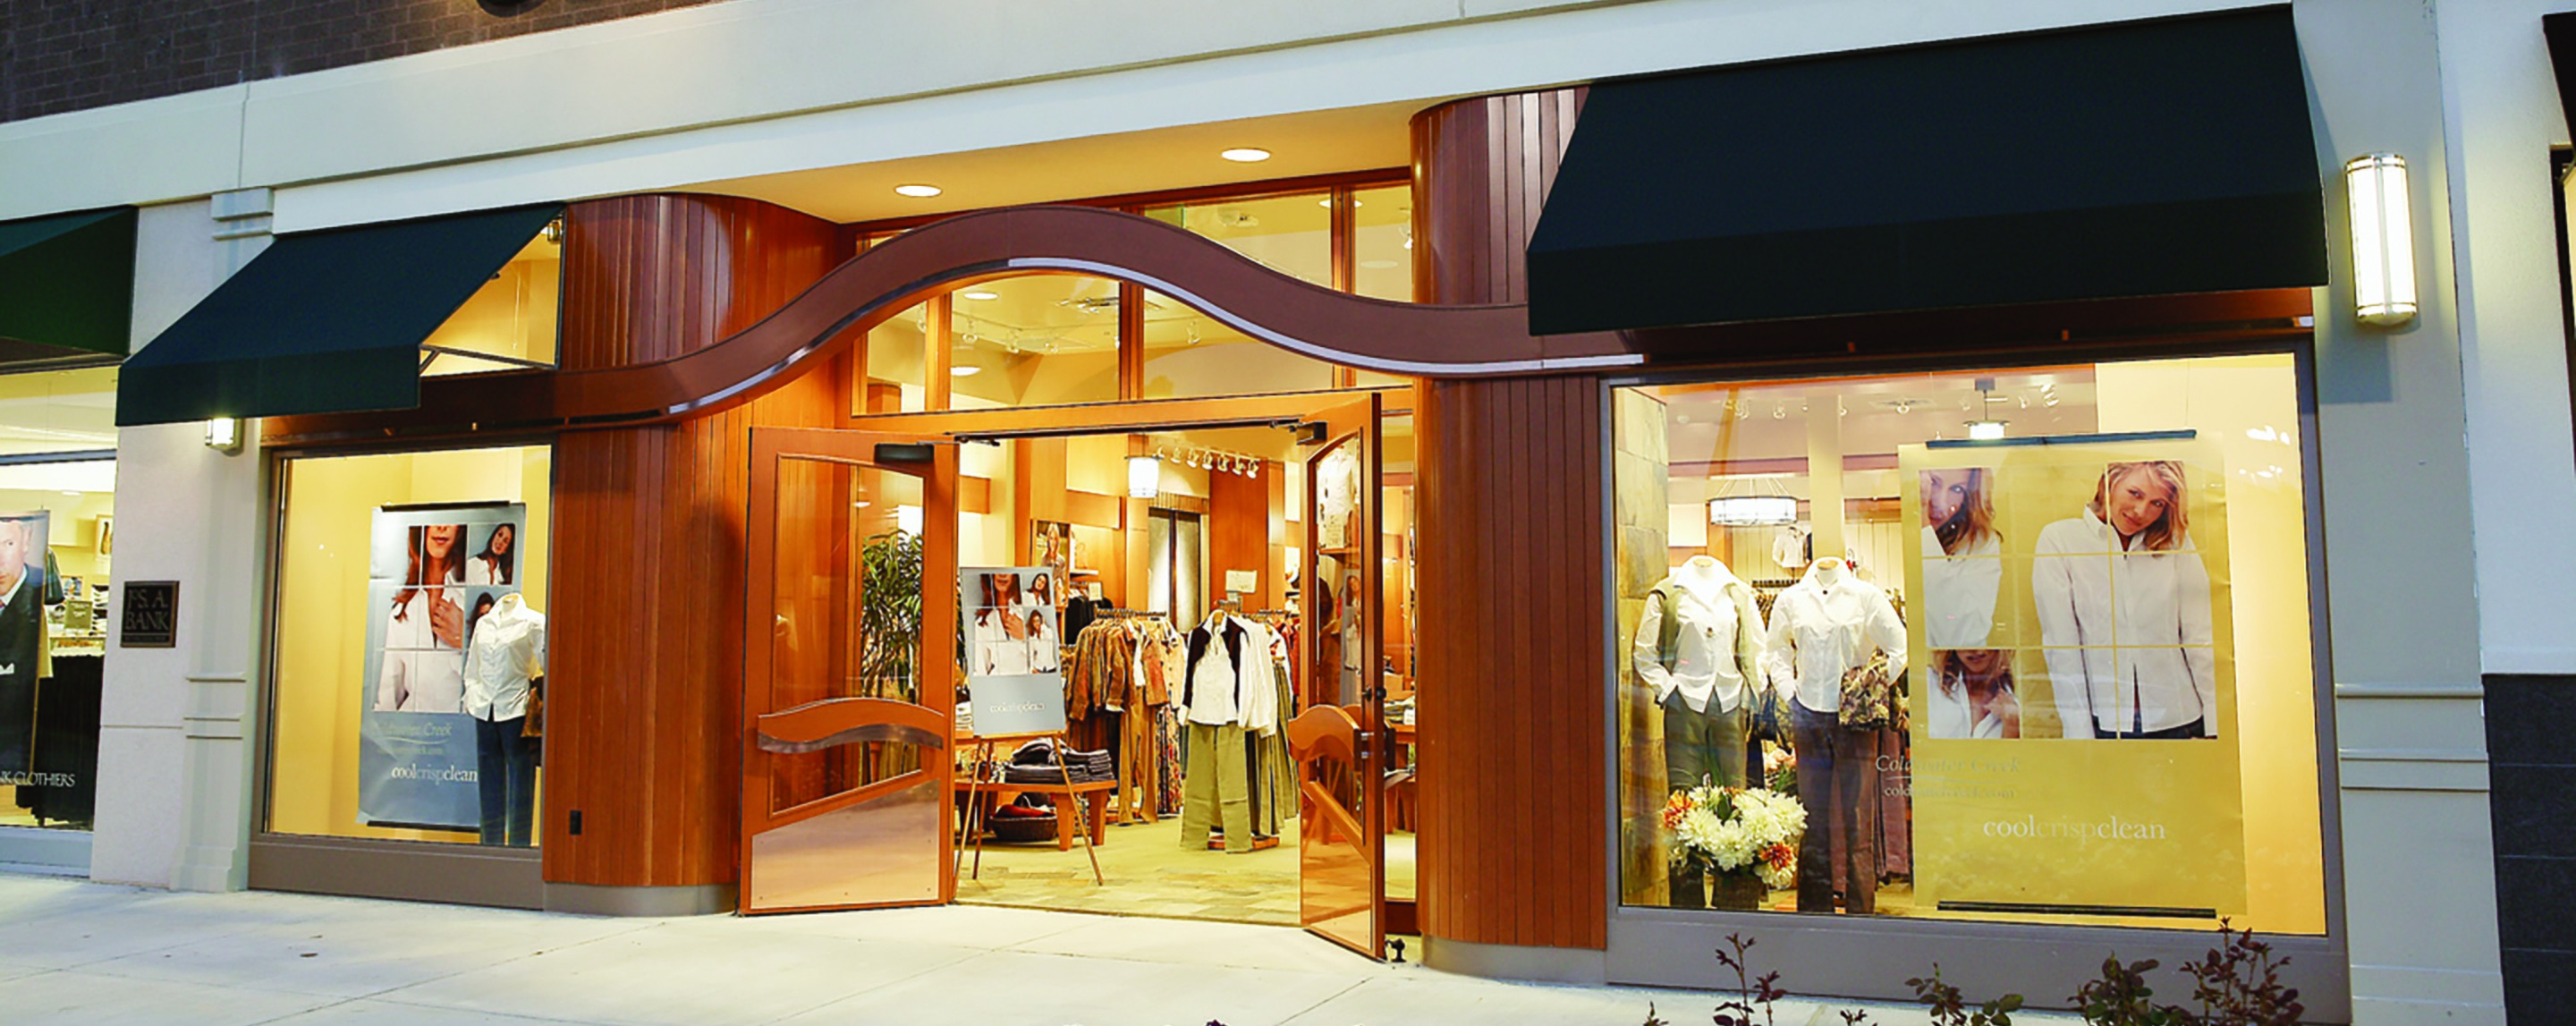 A well lit storefront features displays of women's clothing and large wooden columns.